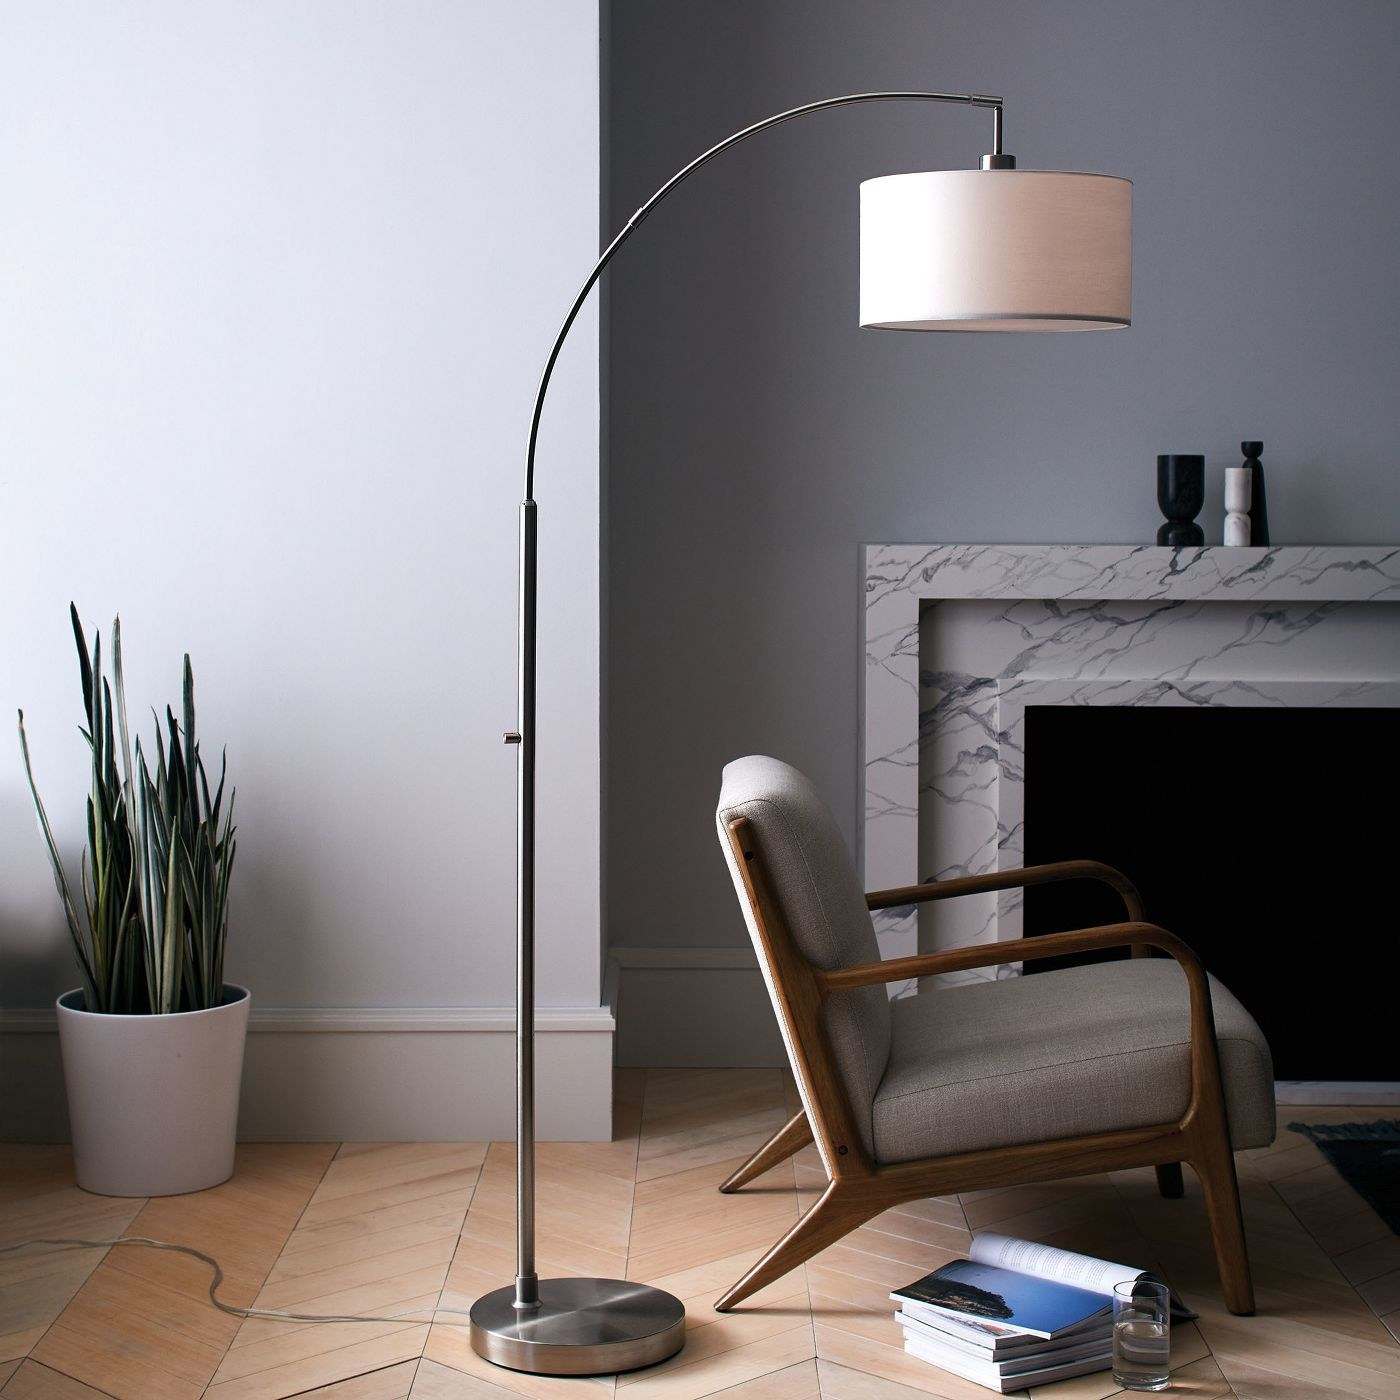 silver arc lamp with an off white lamp shade next to a grey armchair